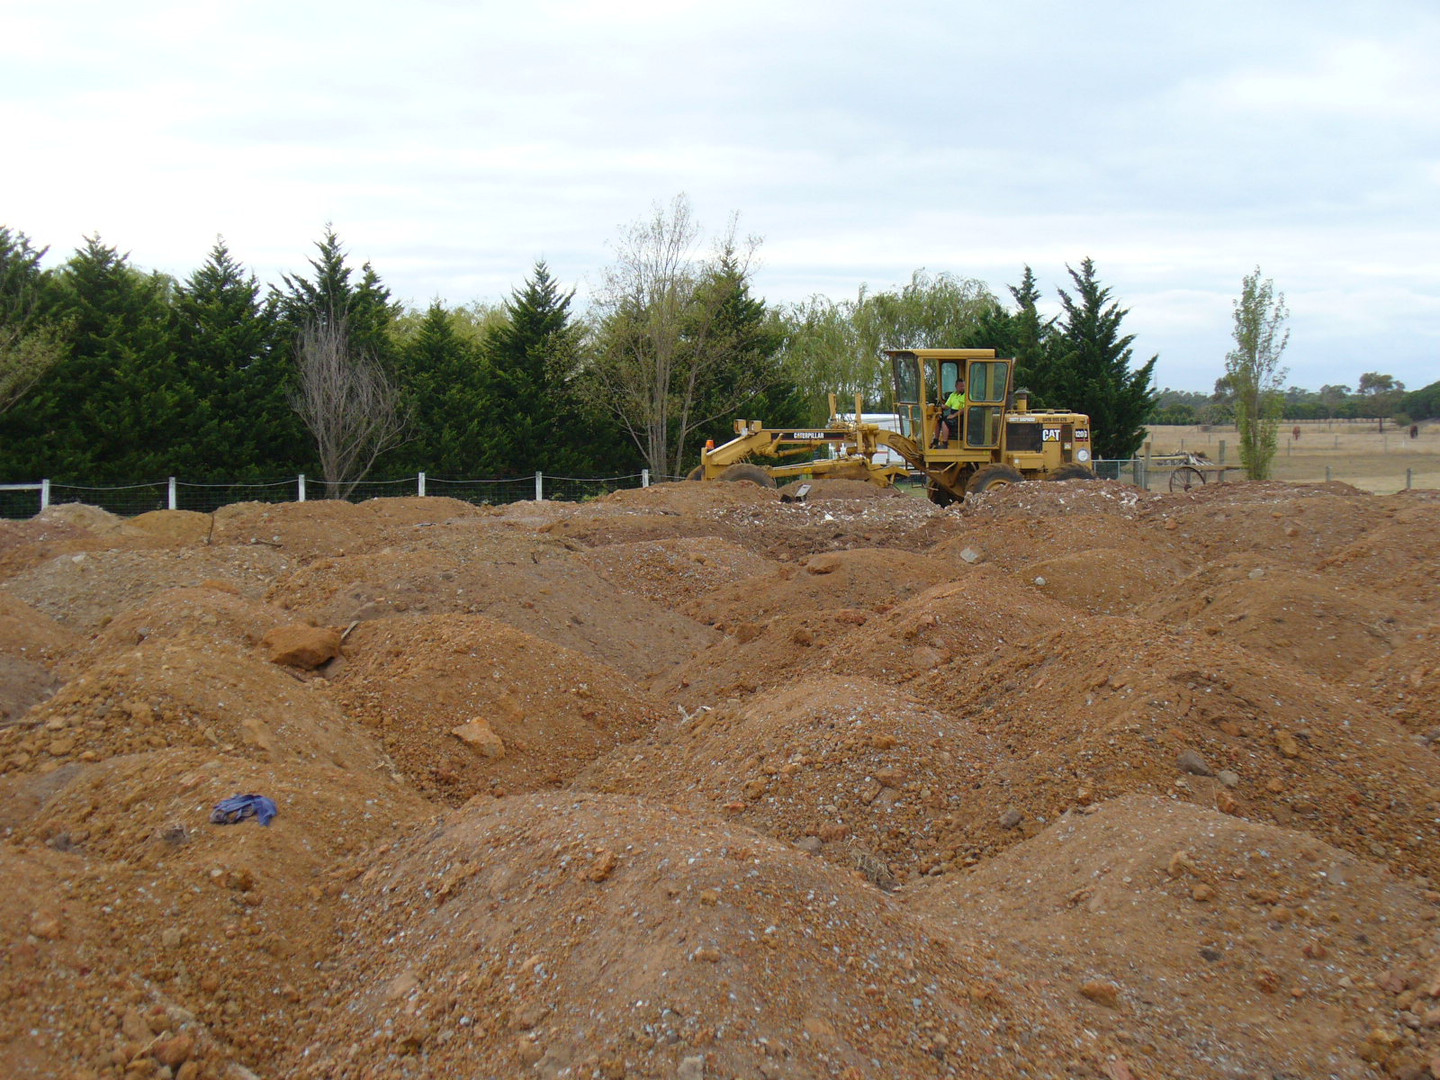 The grader arrives to start work - 1 1/2 days to level and flatten the site with a 300mm fall.